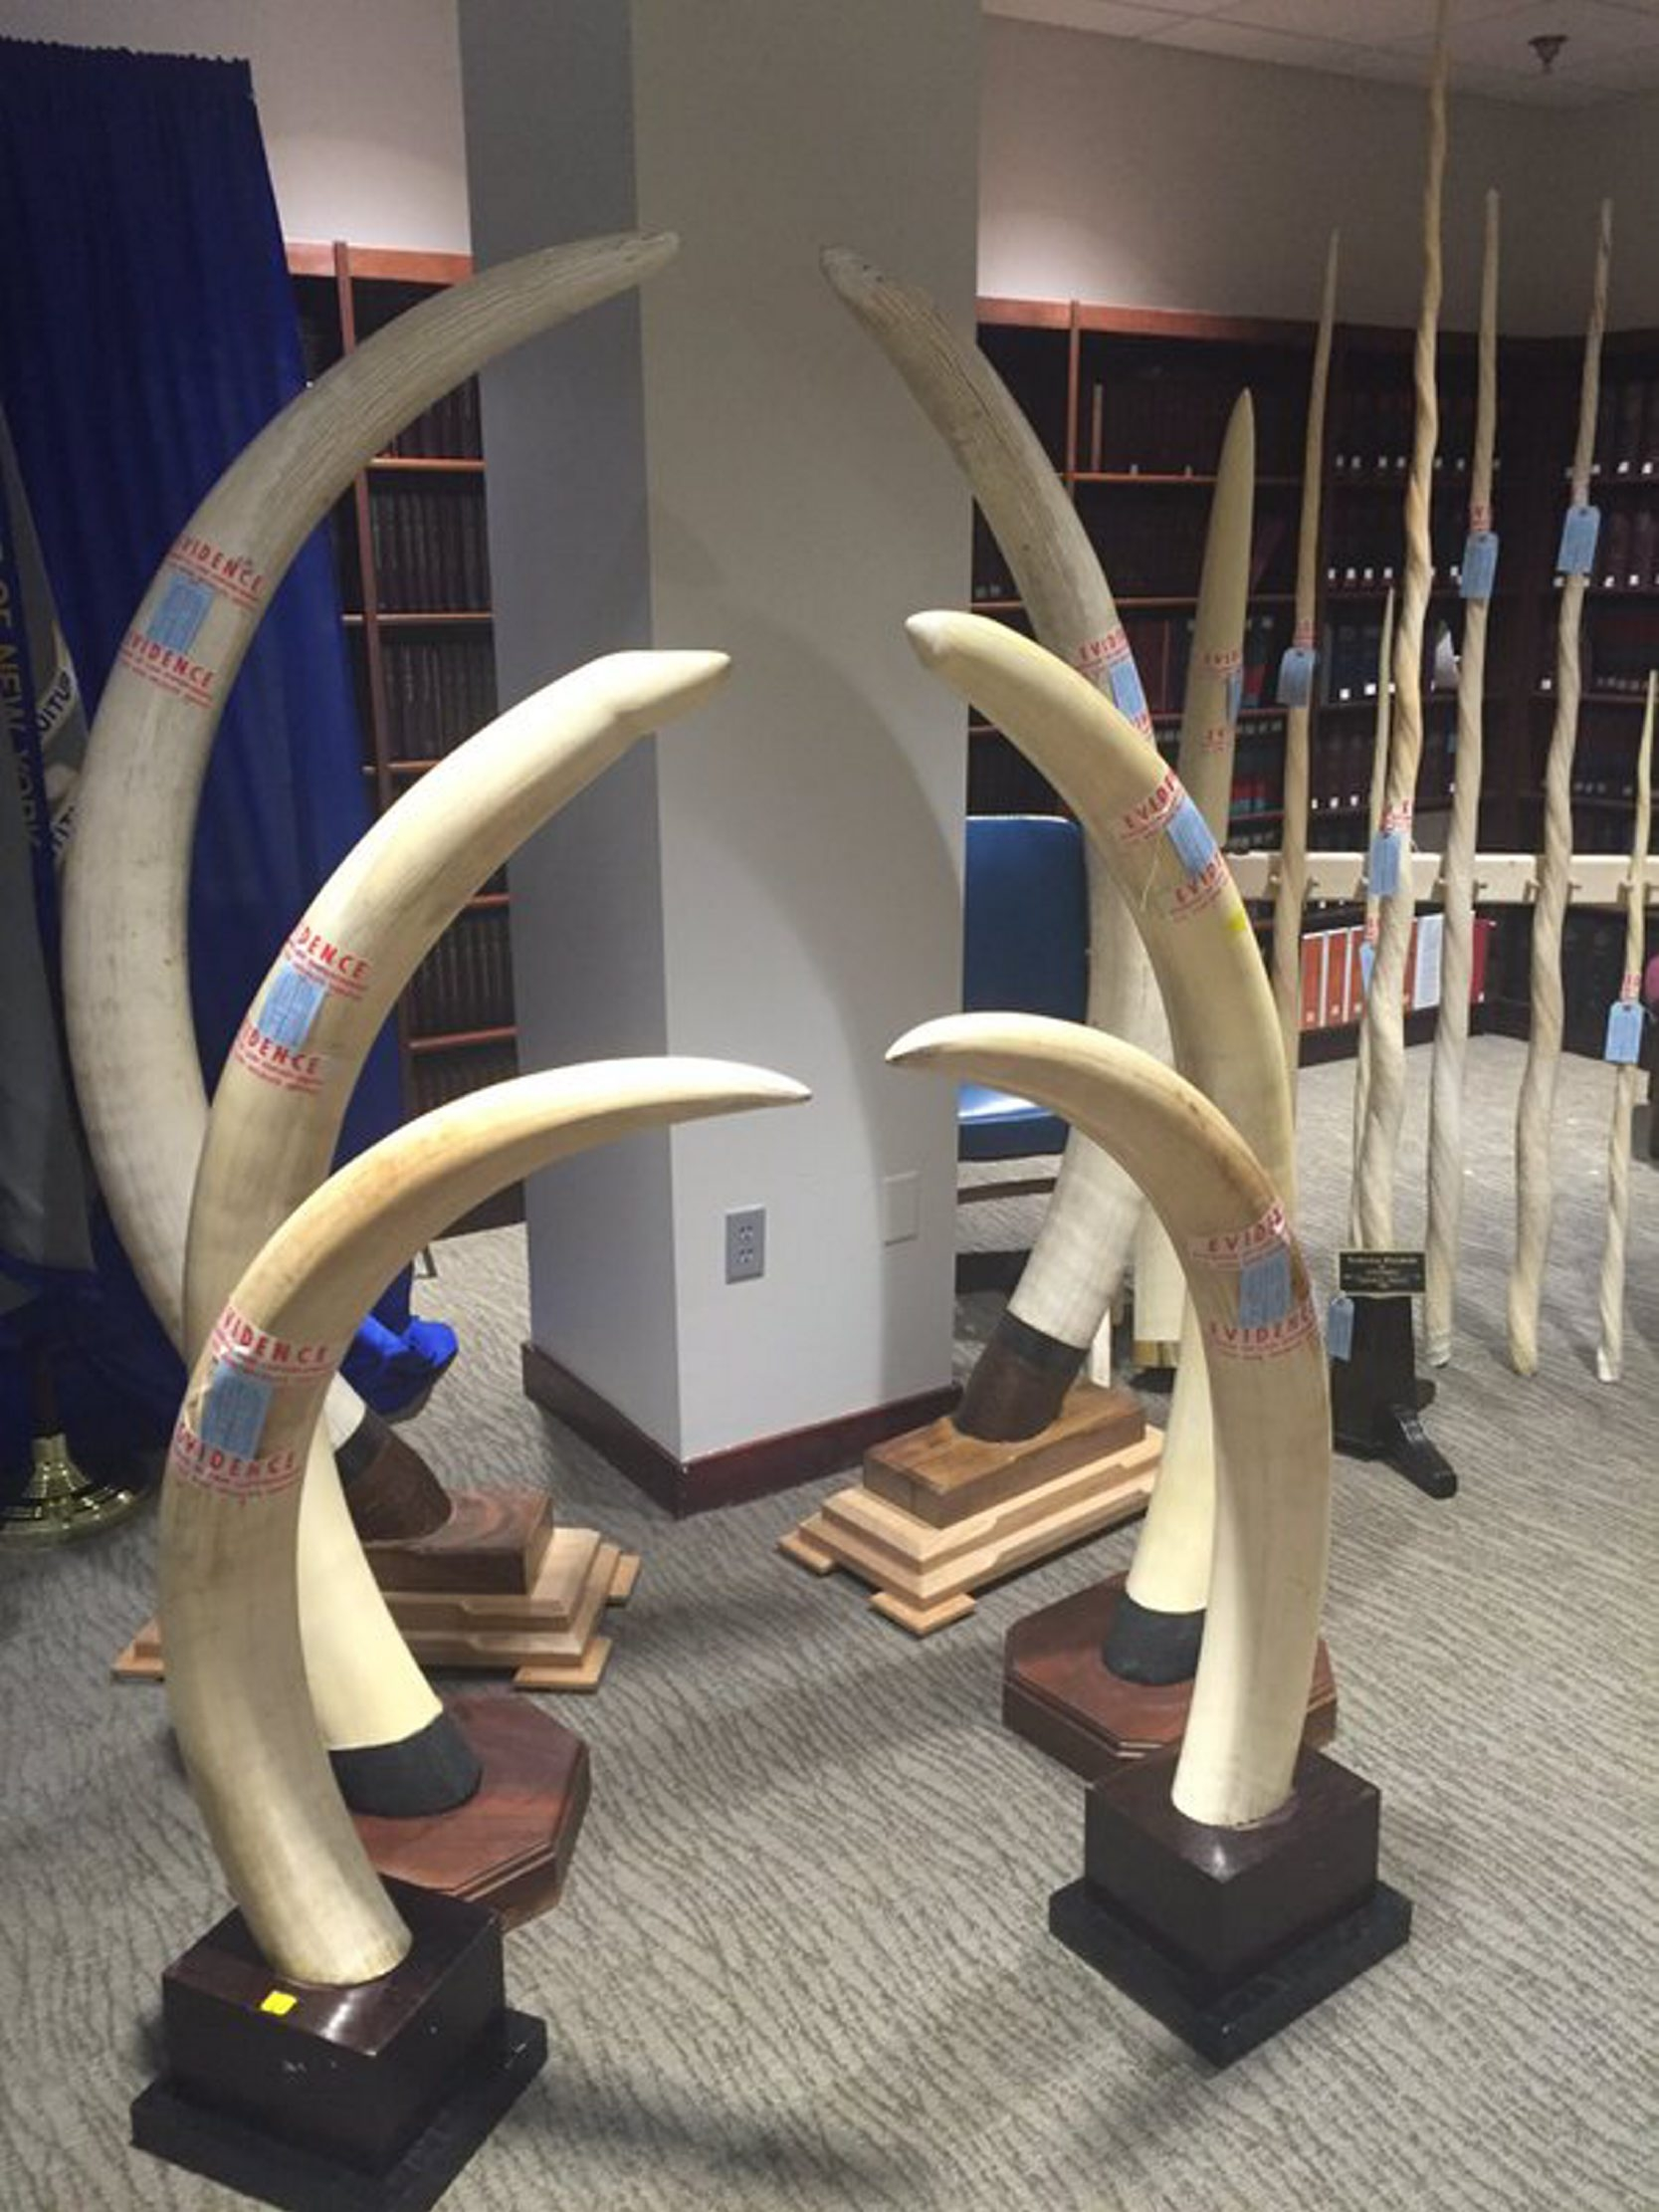 Elephant tusks surrendered by Franklinville antiques dealer as part of a federal plea Wednesday, Feb. 17, 2016. (John Hickey/Buffalo News)